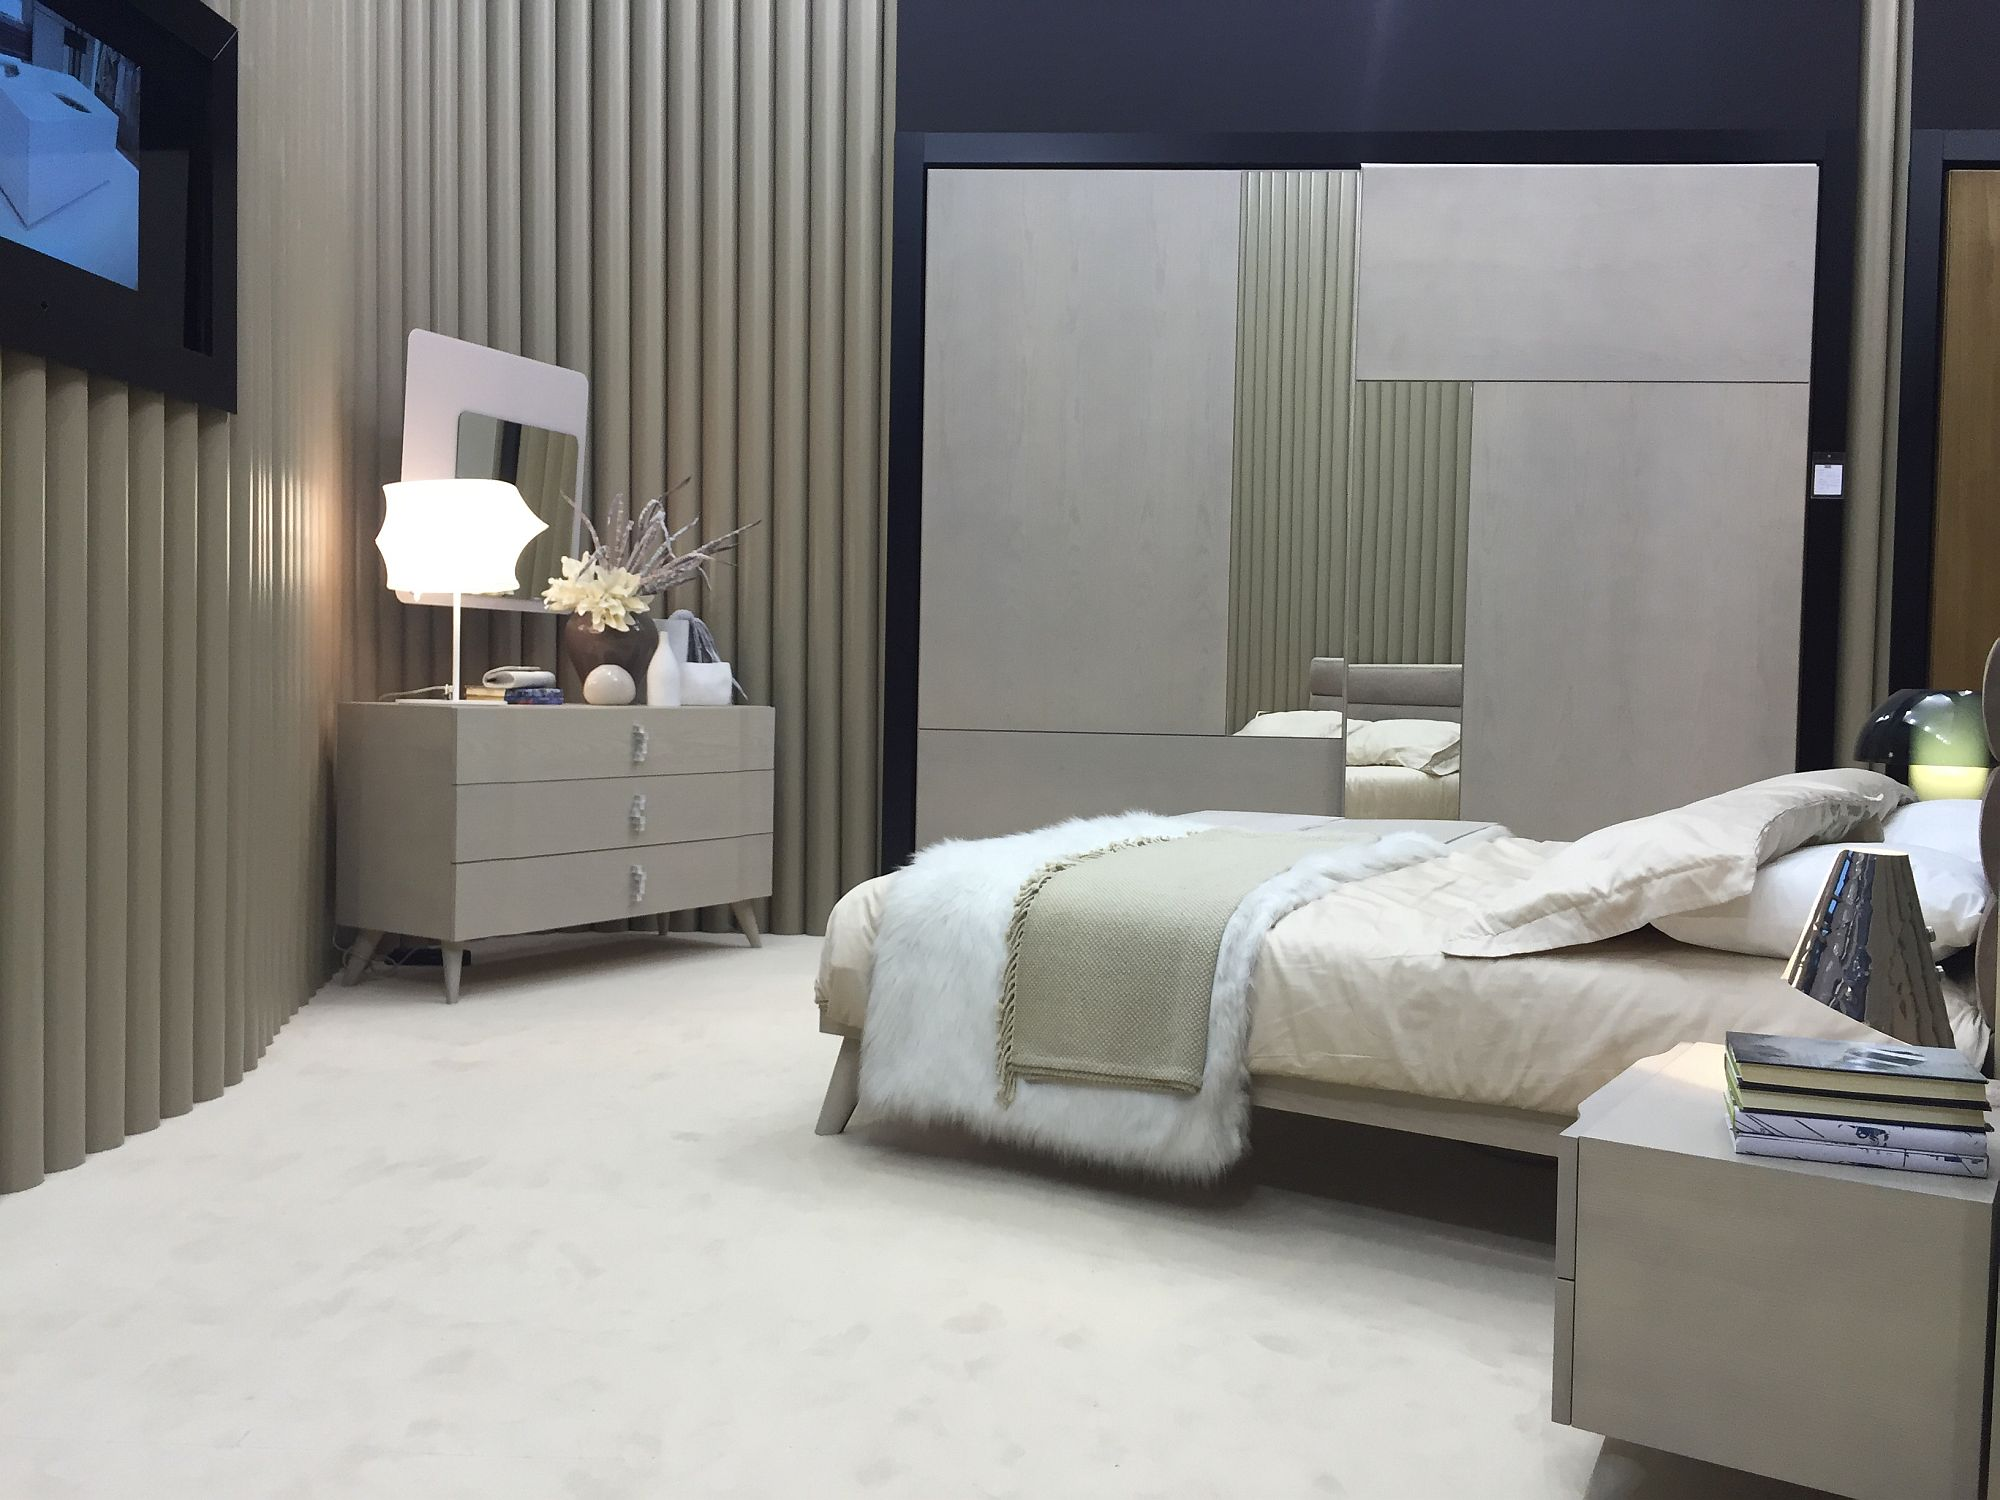 ... Nighstand makes use of unique corner space in the bedroom & 16 Innovative Bedroom Storage and Walk-in Closet Ideas